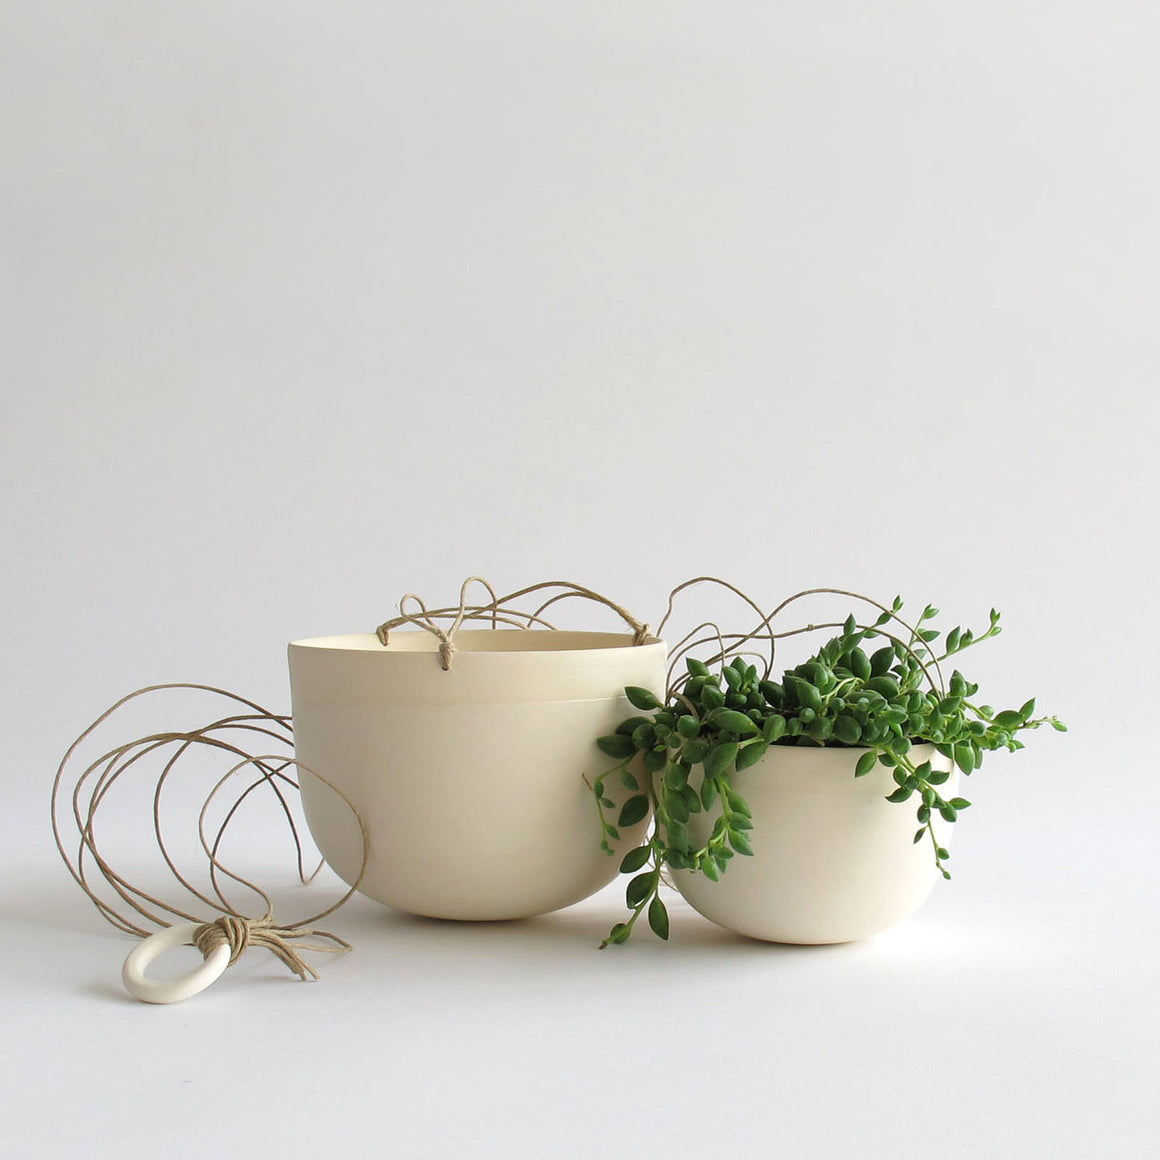 White Stoneware Hanging Planter - KESTREL